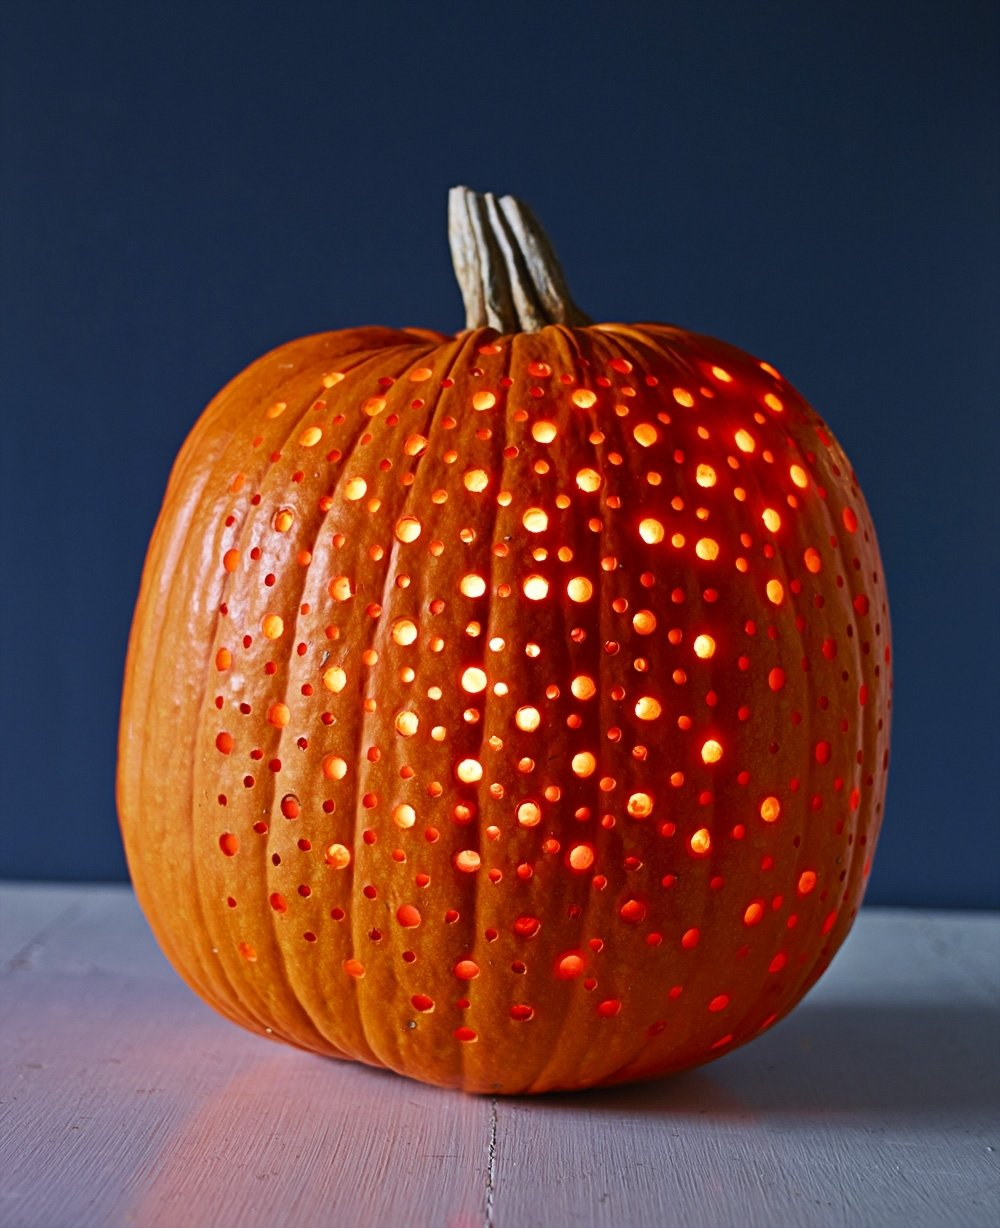 10 Most Recommended Cool Pumpkin Carving Ideas Easy 60 pumpkin decorating ideas and designs for halloween pumpkin 9 2020